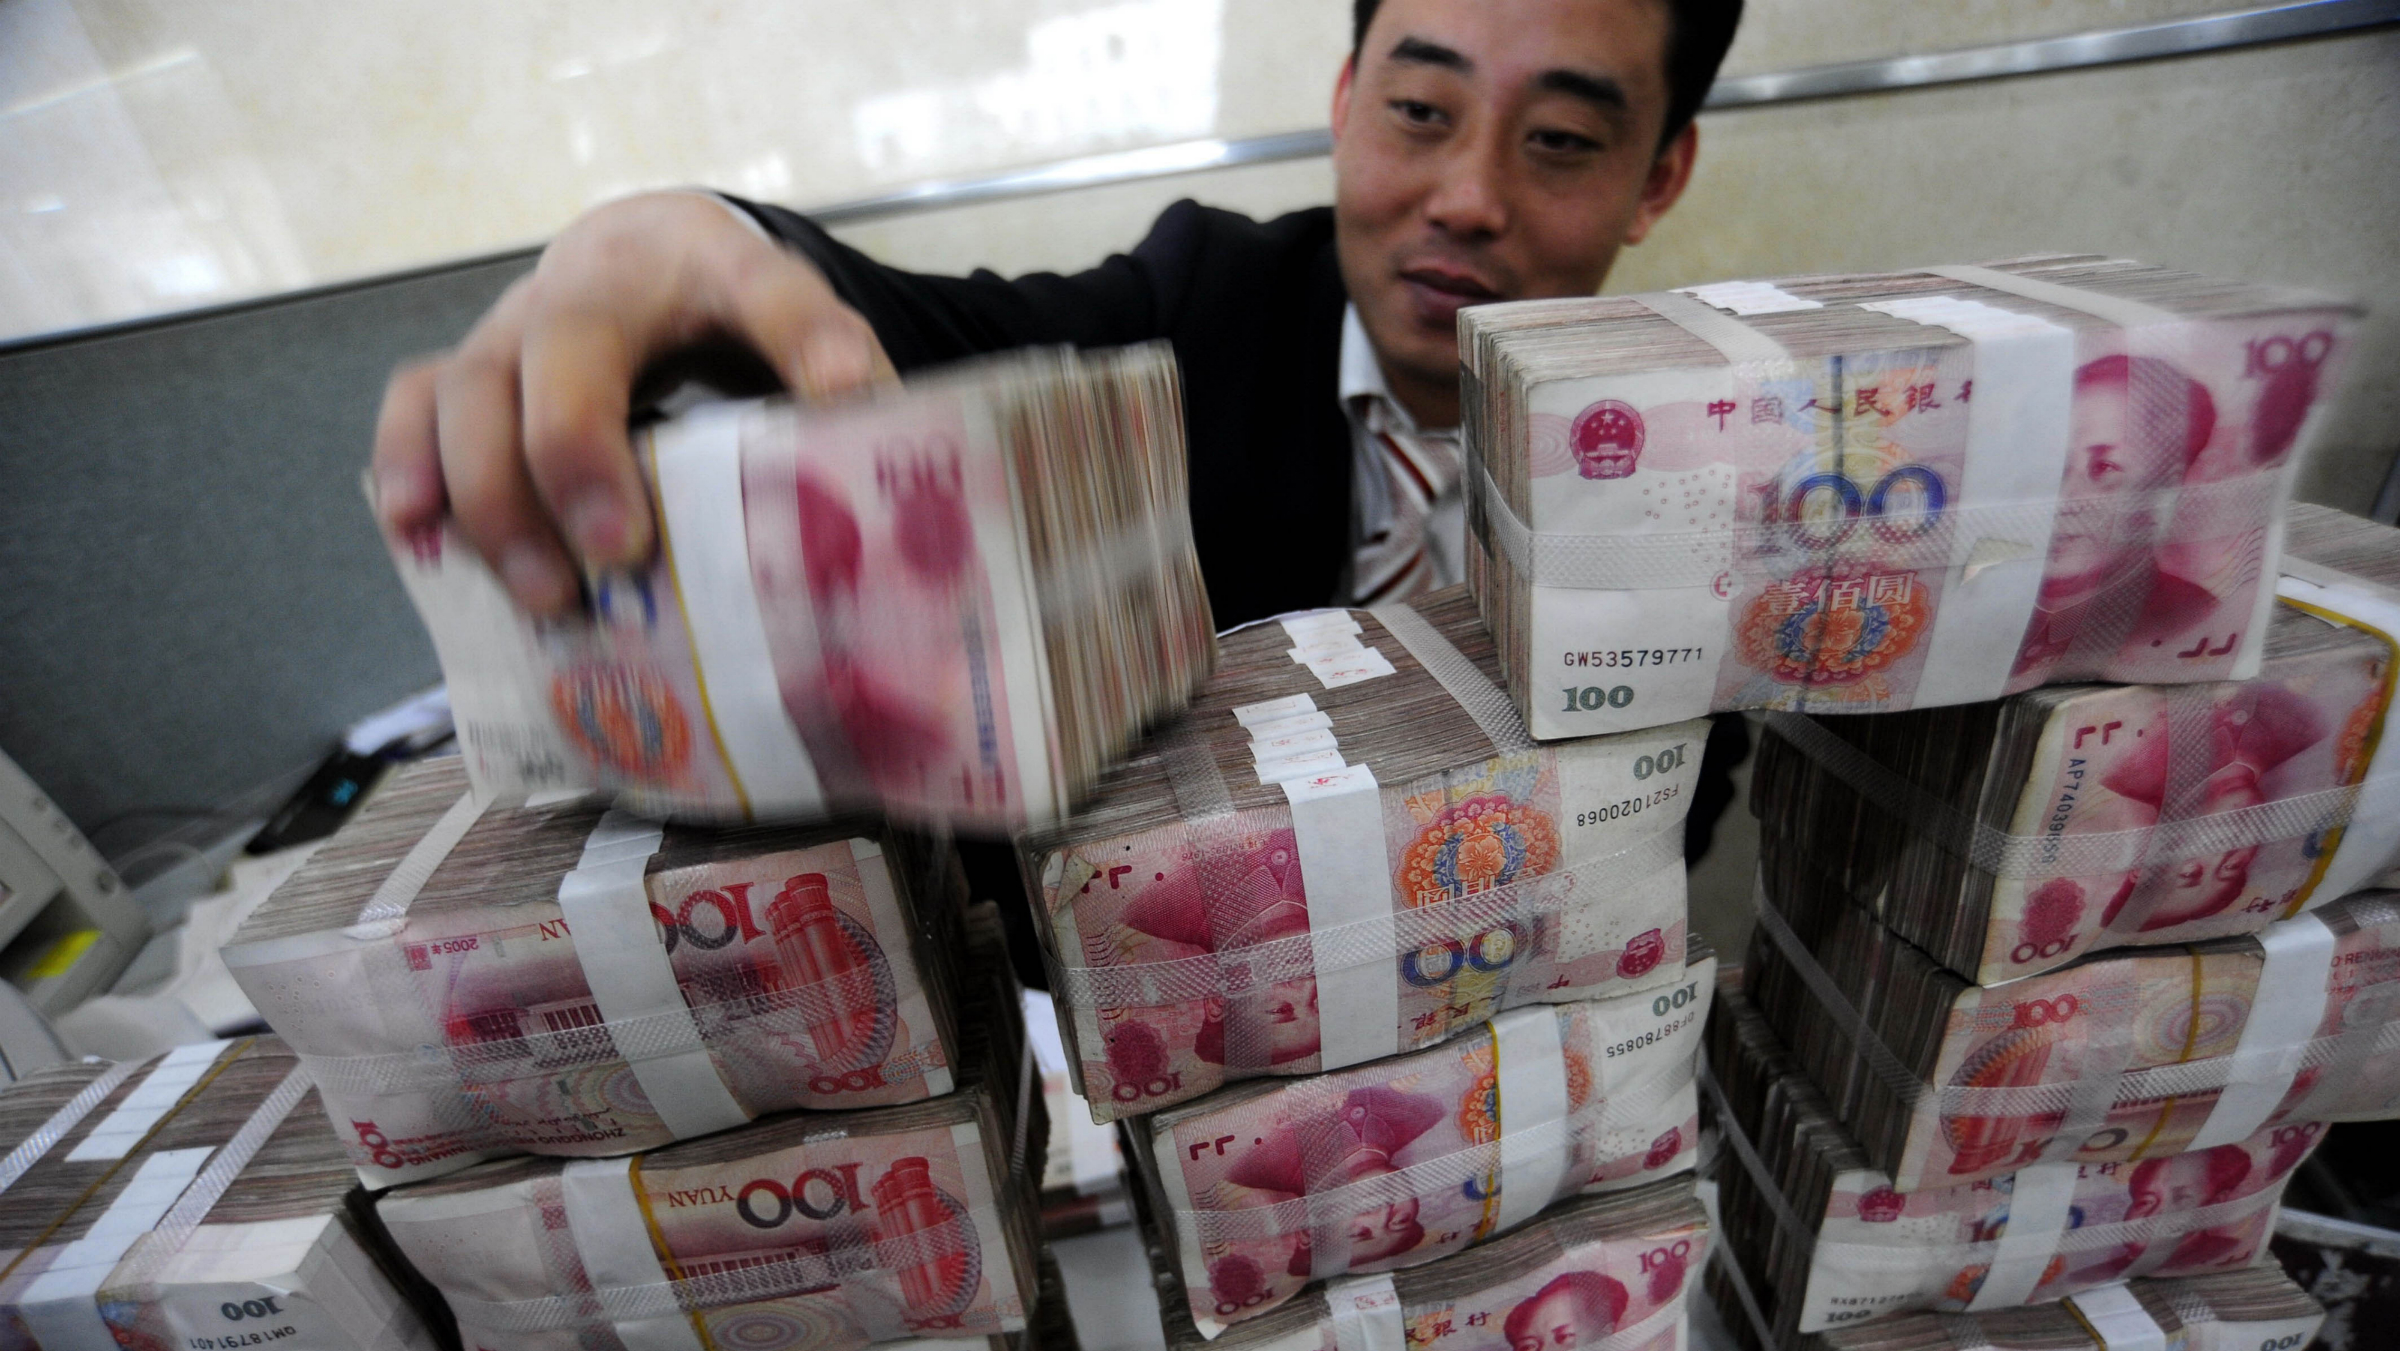 In this file photo taken on Nov. 17, 2009, a bank clerk stacks up renminbi banknotes at a bank in Hefei in central China's Anhui province. China has ordered its banks to hold back more money as reserves in a new move to curb lending and cool inflation. The order Friday Nov. 19, 2010, was China's second reserve increase in two weeks and came as Beijing tries to restore normal financial conditions and curb inflation after its recovery from the global crisis. (AP Photo